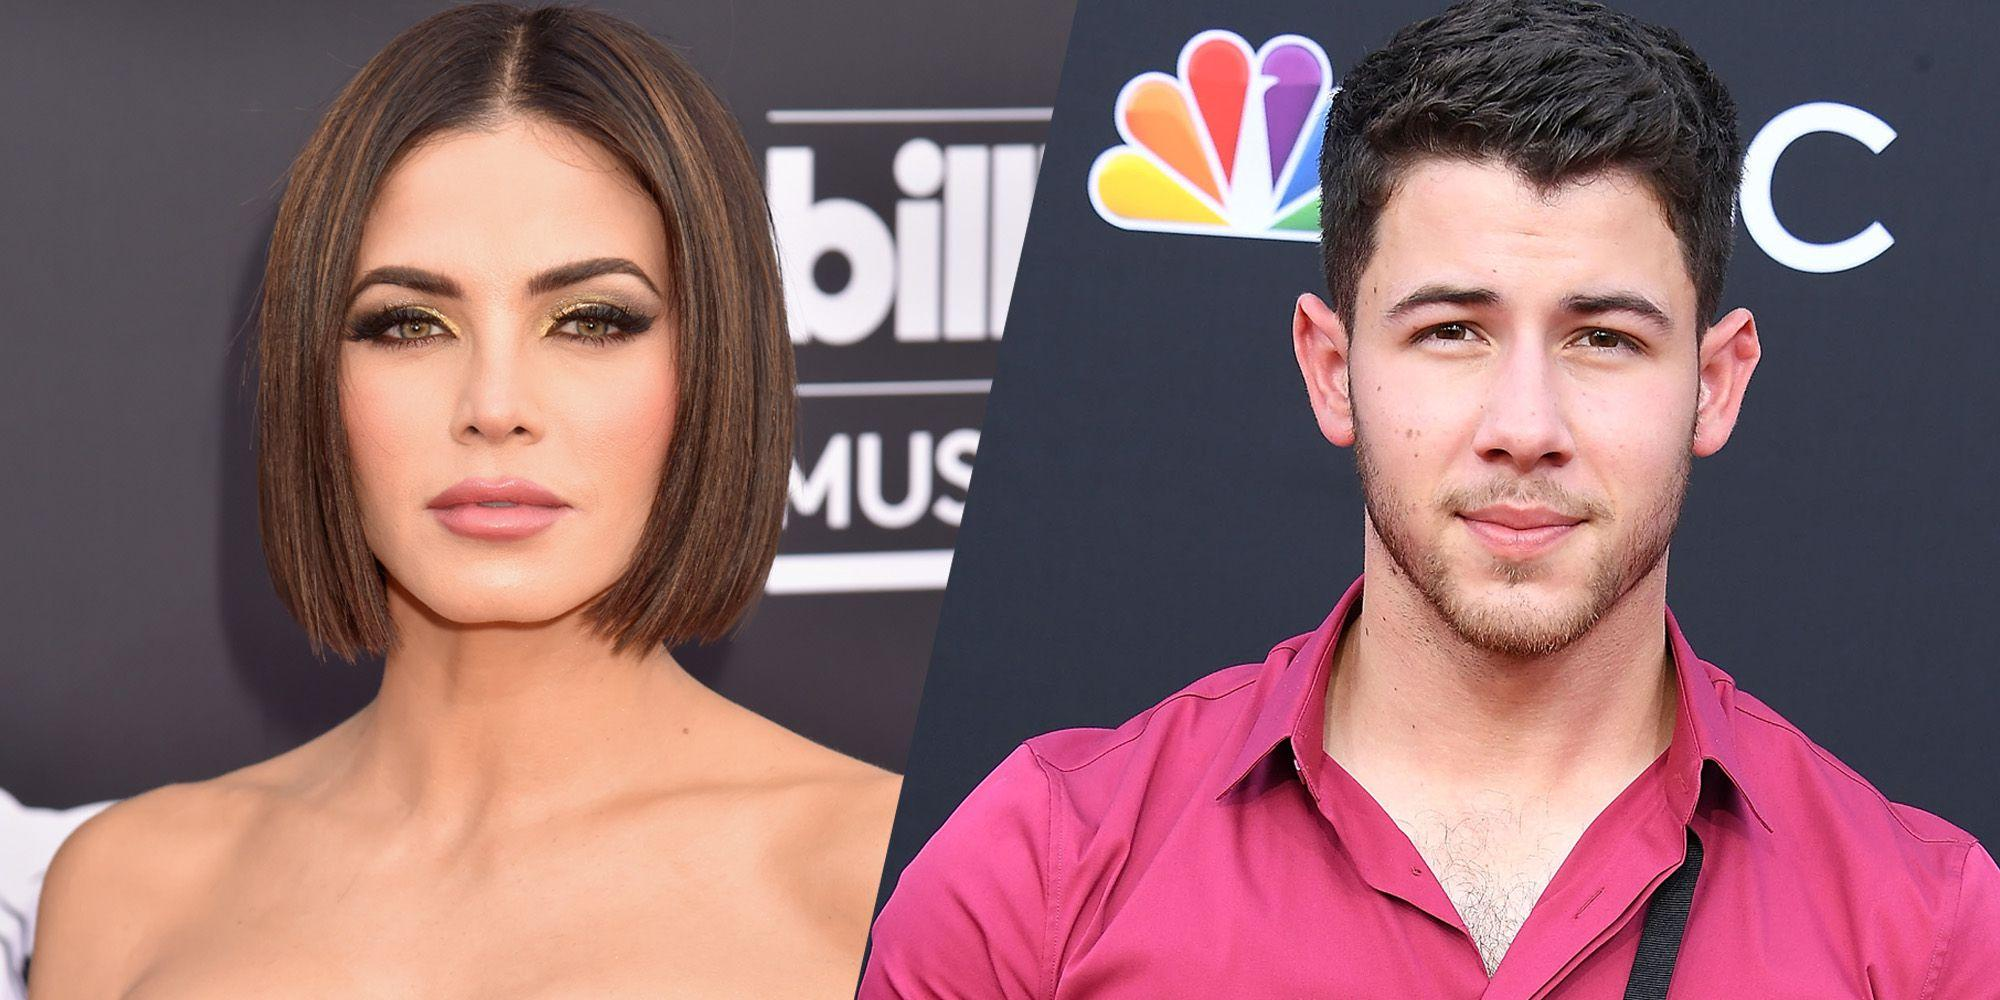 Jenna Dewan Finally Reveals If She Hooked Up With Nick Jonas Amid Rumors They Did Last Year When He Seemed To Flirt Online